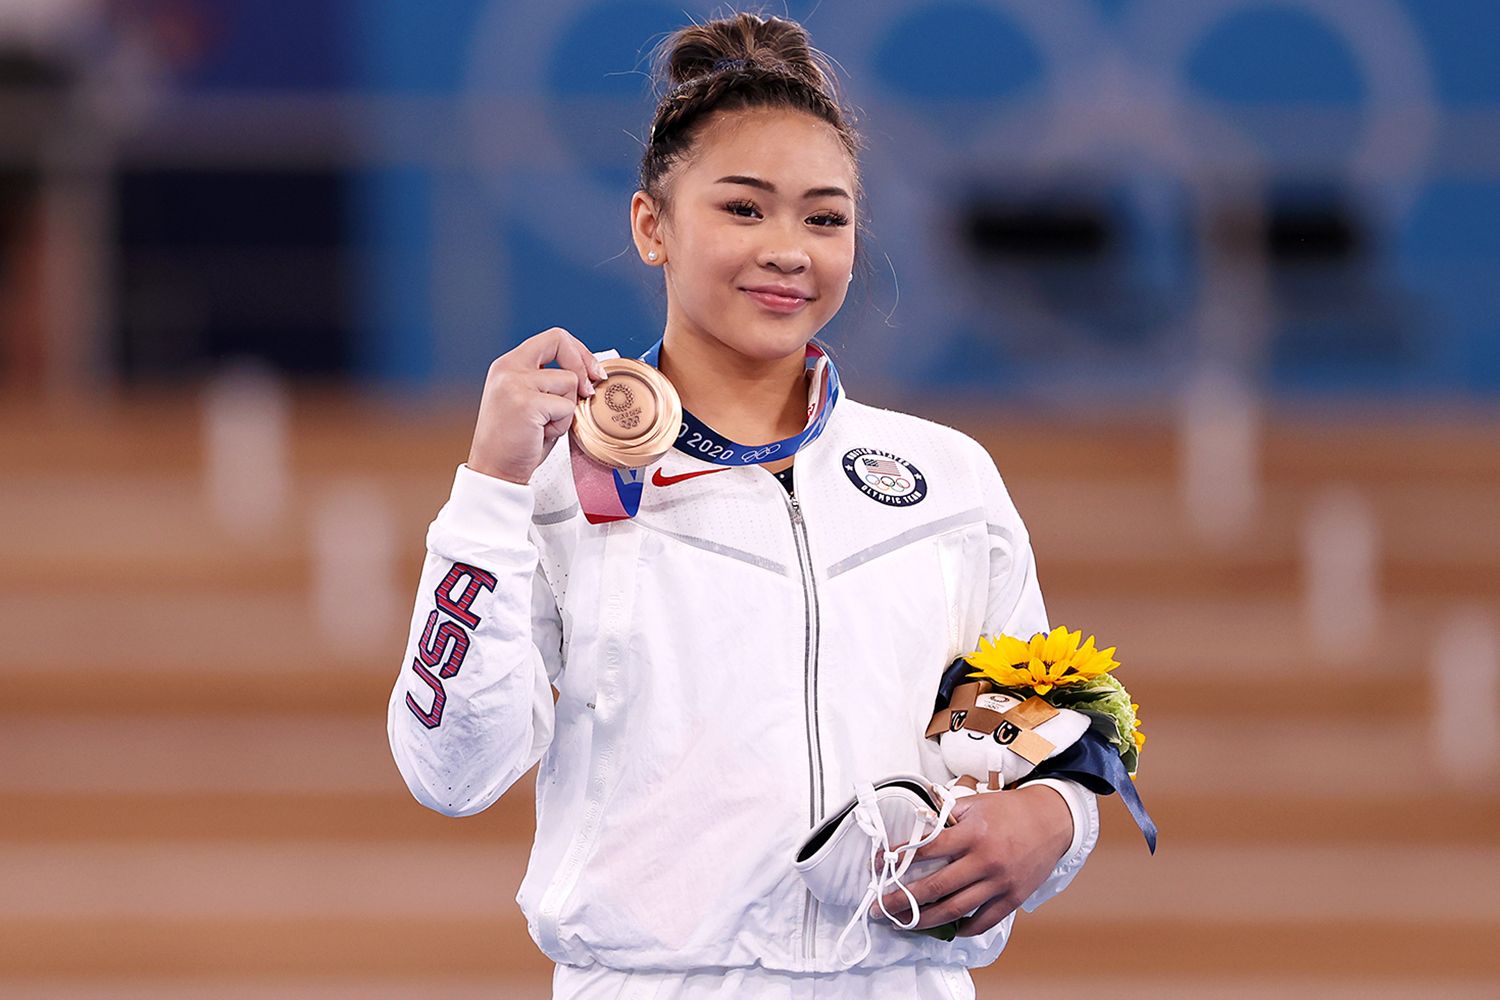 Bronze Medalist Sunisa Lee of Team United States poses with her medal on the podium during the Women's Uneven Bars Final medal ceremony on day nine of the Tokyo 2020 Olympic Games at Ariake Gymnastics Centre on August 01, 2021 in Tokyo, Japan.